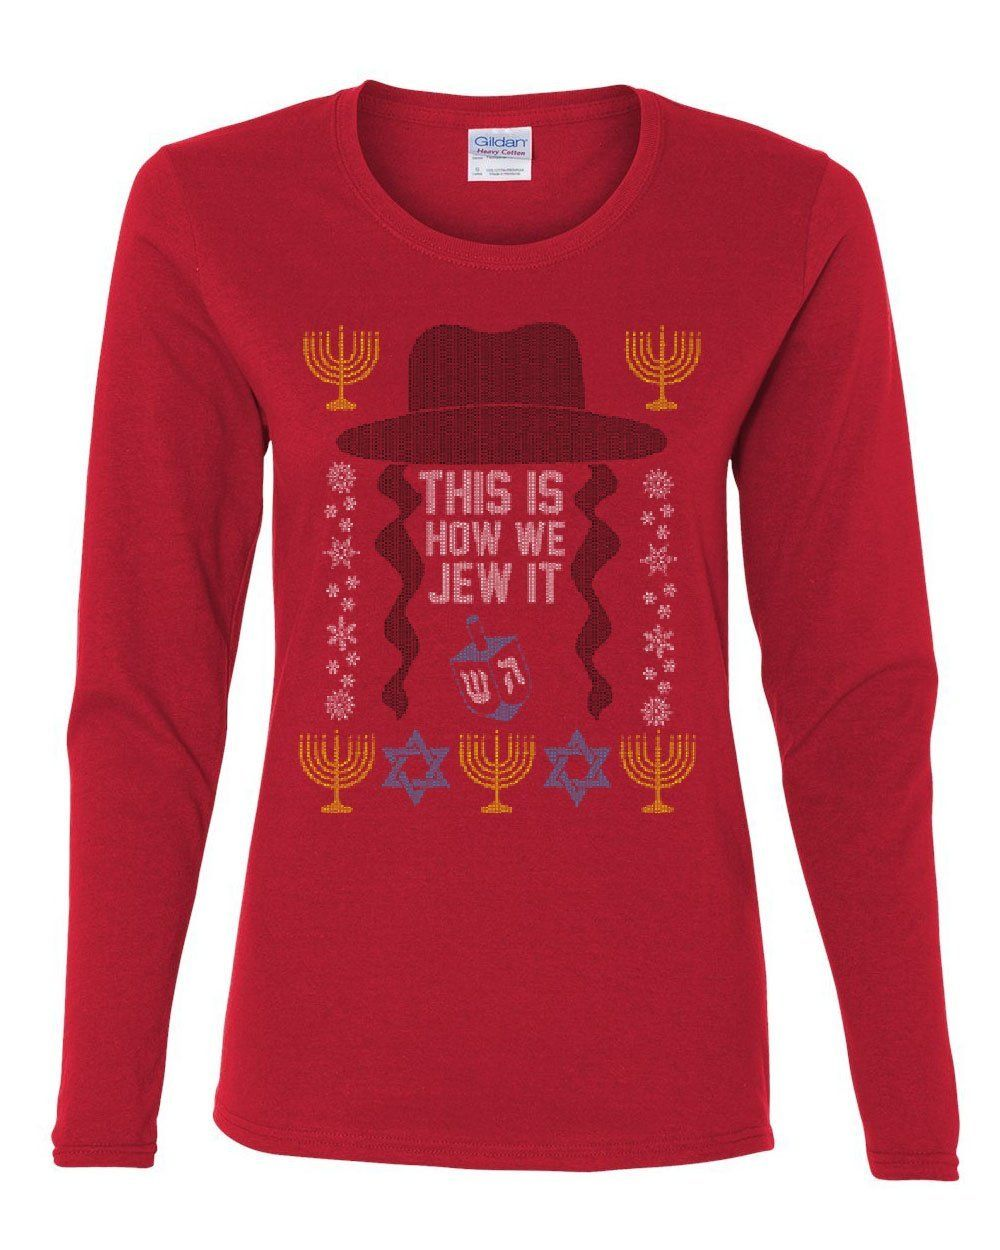 b37ff670 This Is How We Jew It Women's Long Sleeve Tee Funny Menorah Star of David  Jewish